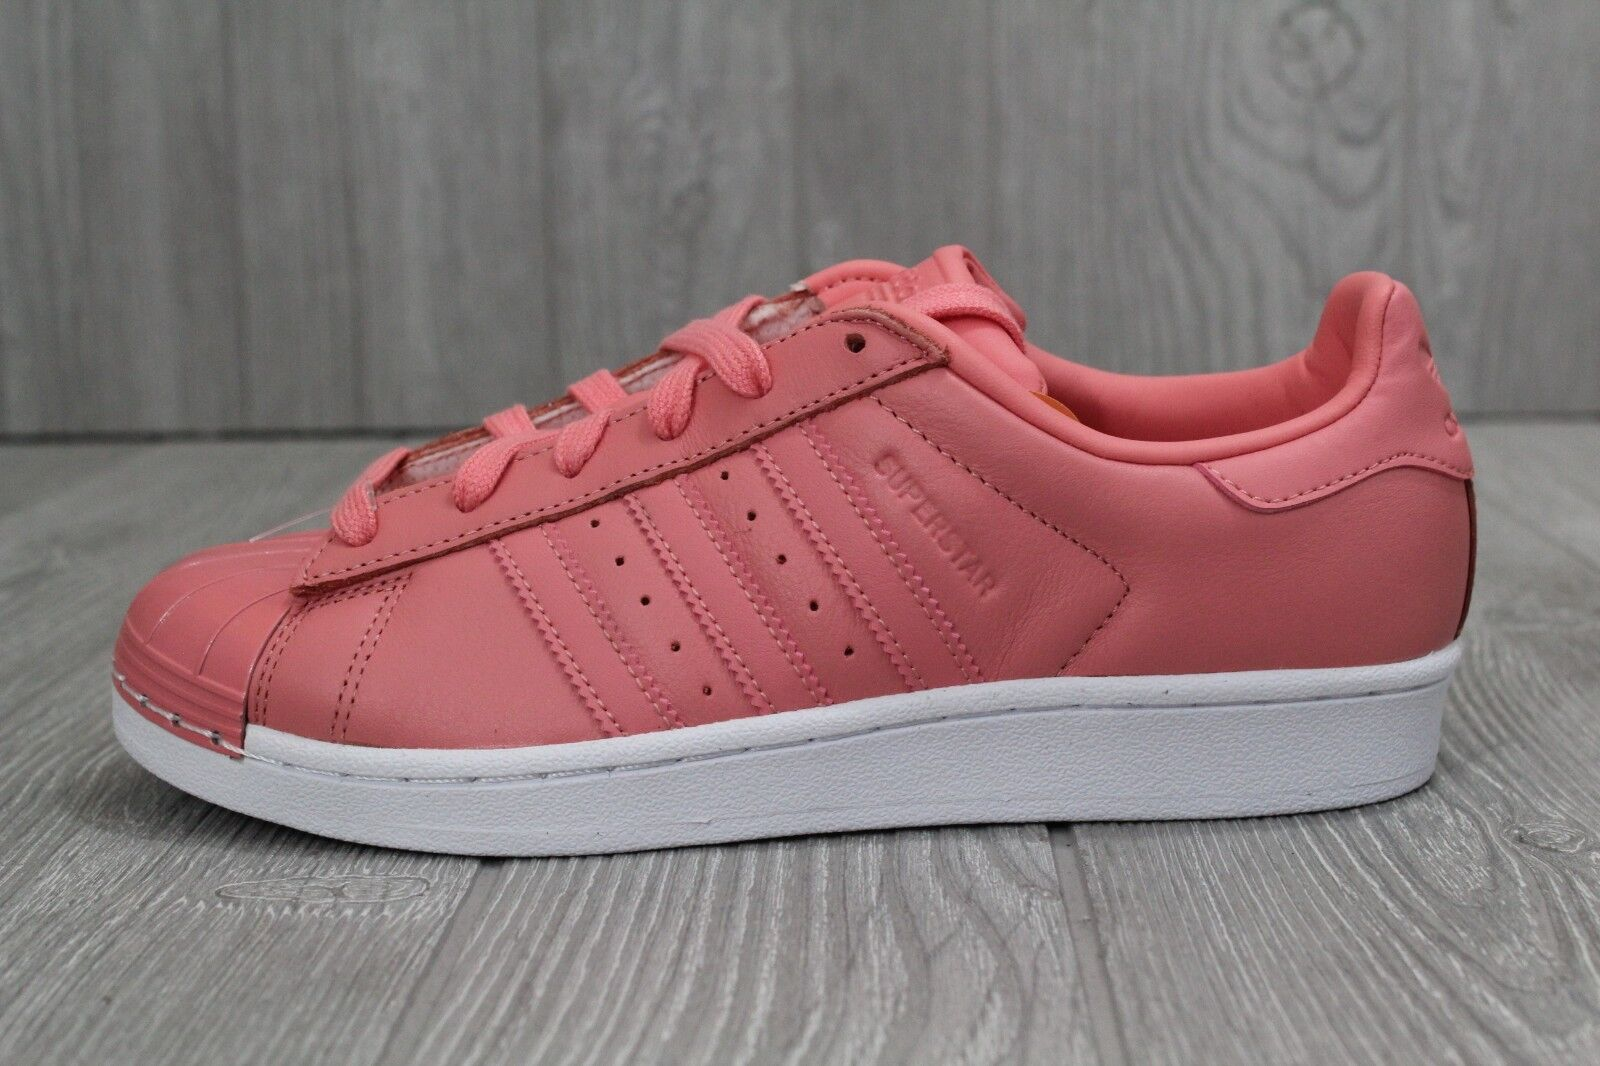 29 New Adidas Superstar 80s Shoes Women's Tactile Rose Leather 7- 8.5 BY9750